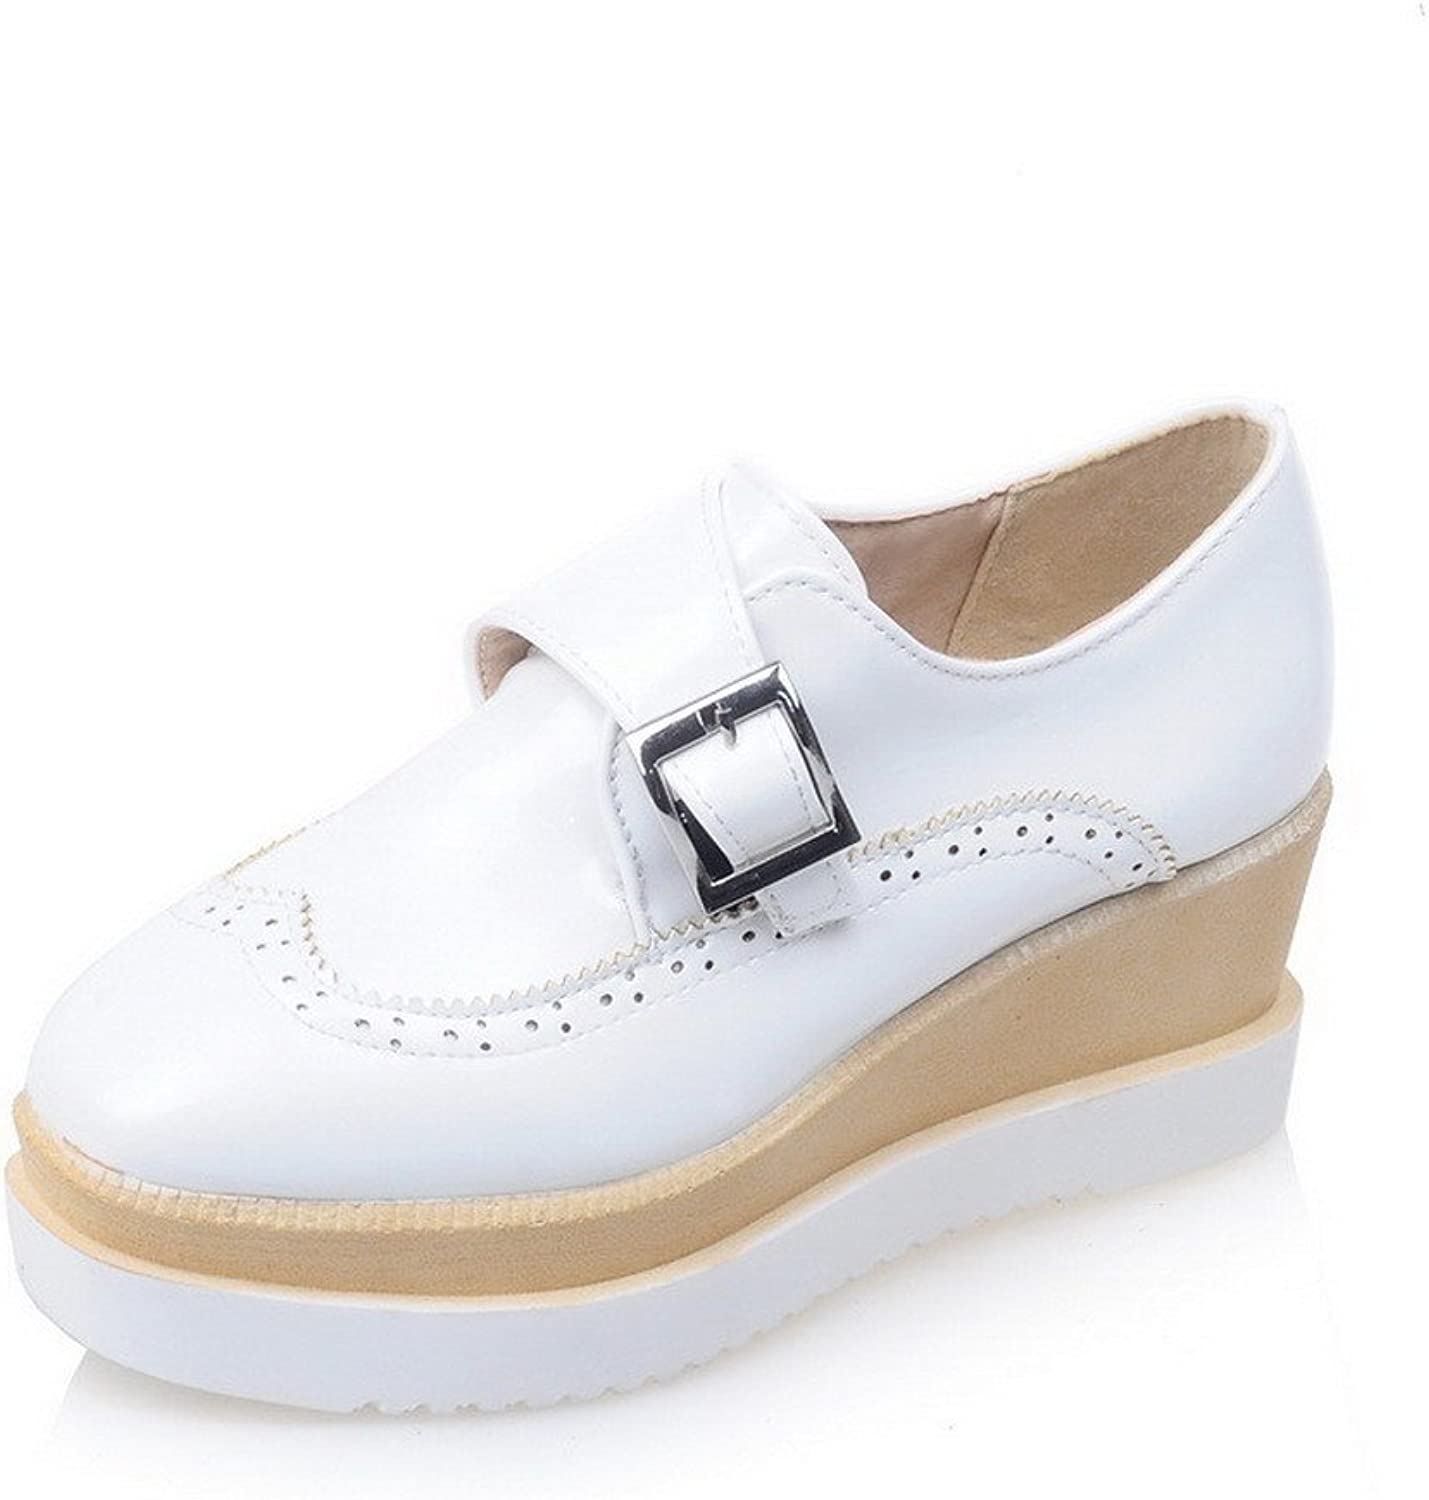 WeenFashion Women's Solid Patent Leather Kitten-Heels Buckle Square Closed Toe Pumps-shoes